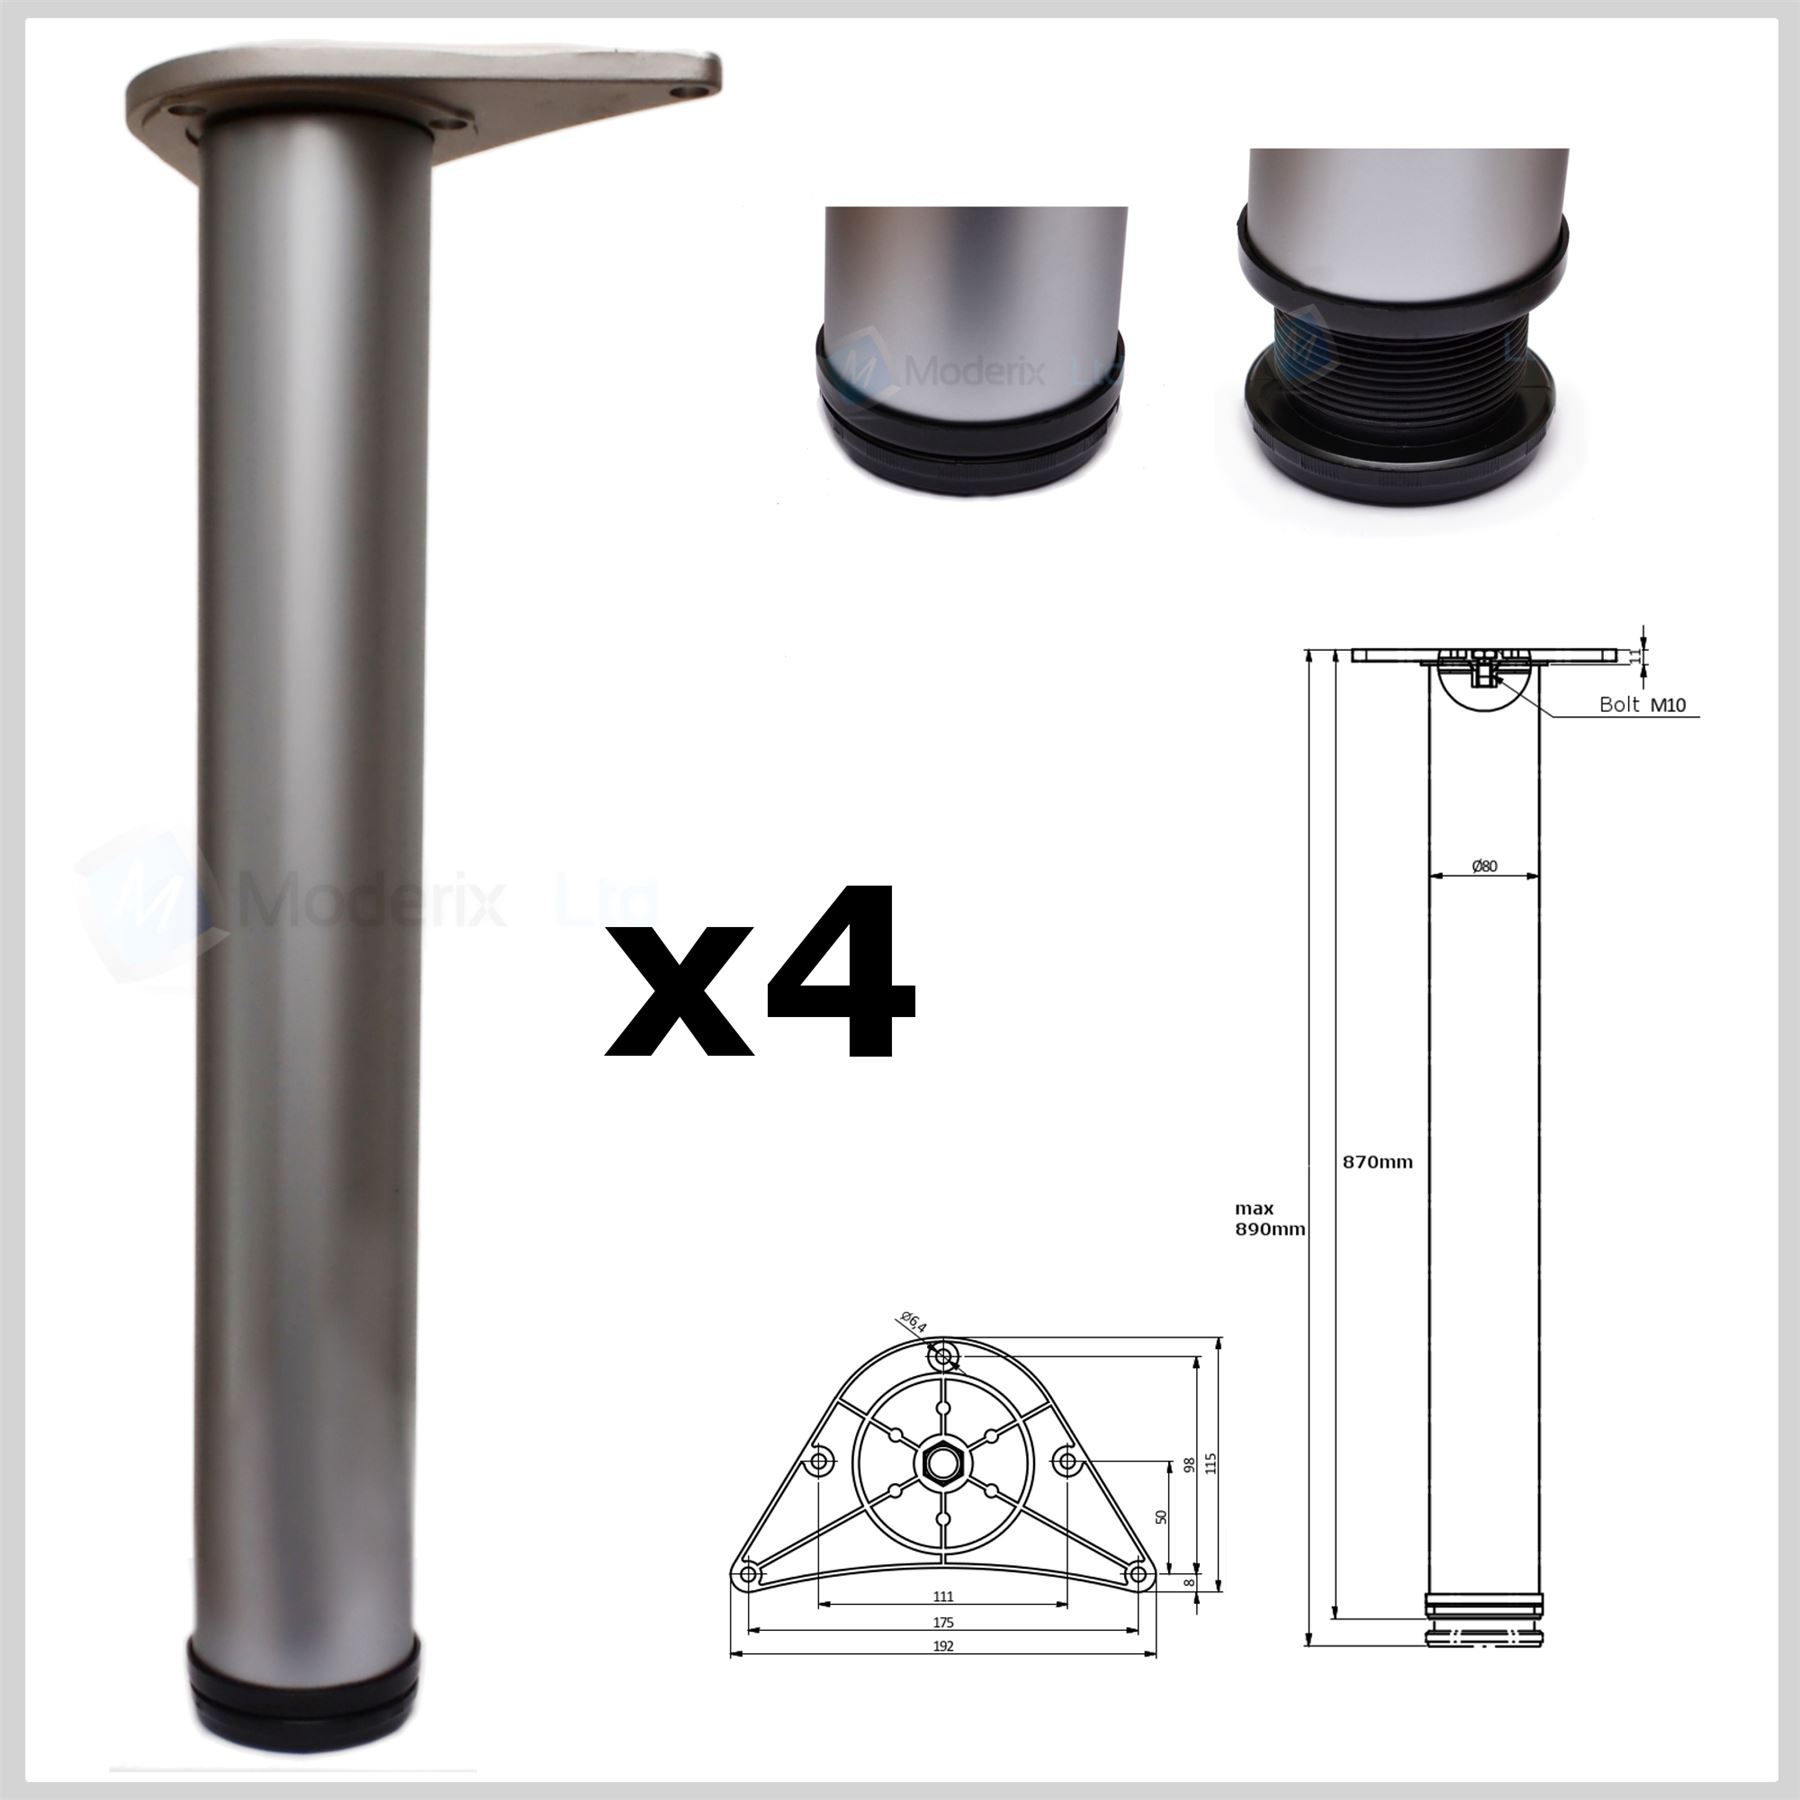 Diy Adjustable Table Legs All Sizes Adjustable Breakfast Bar Worktop Support Table